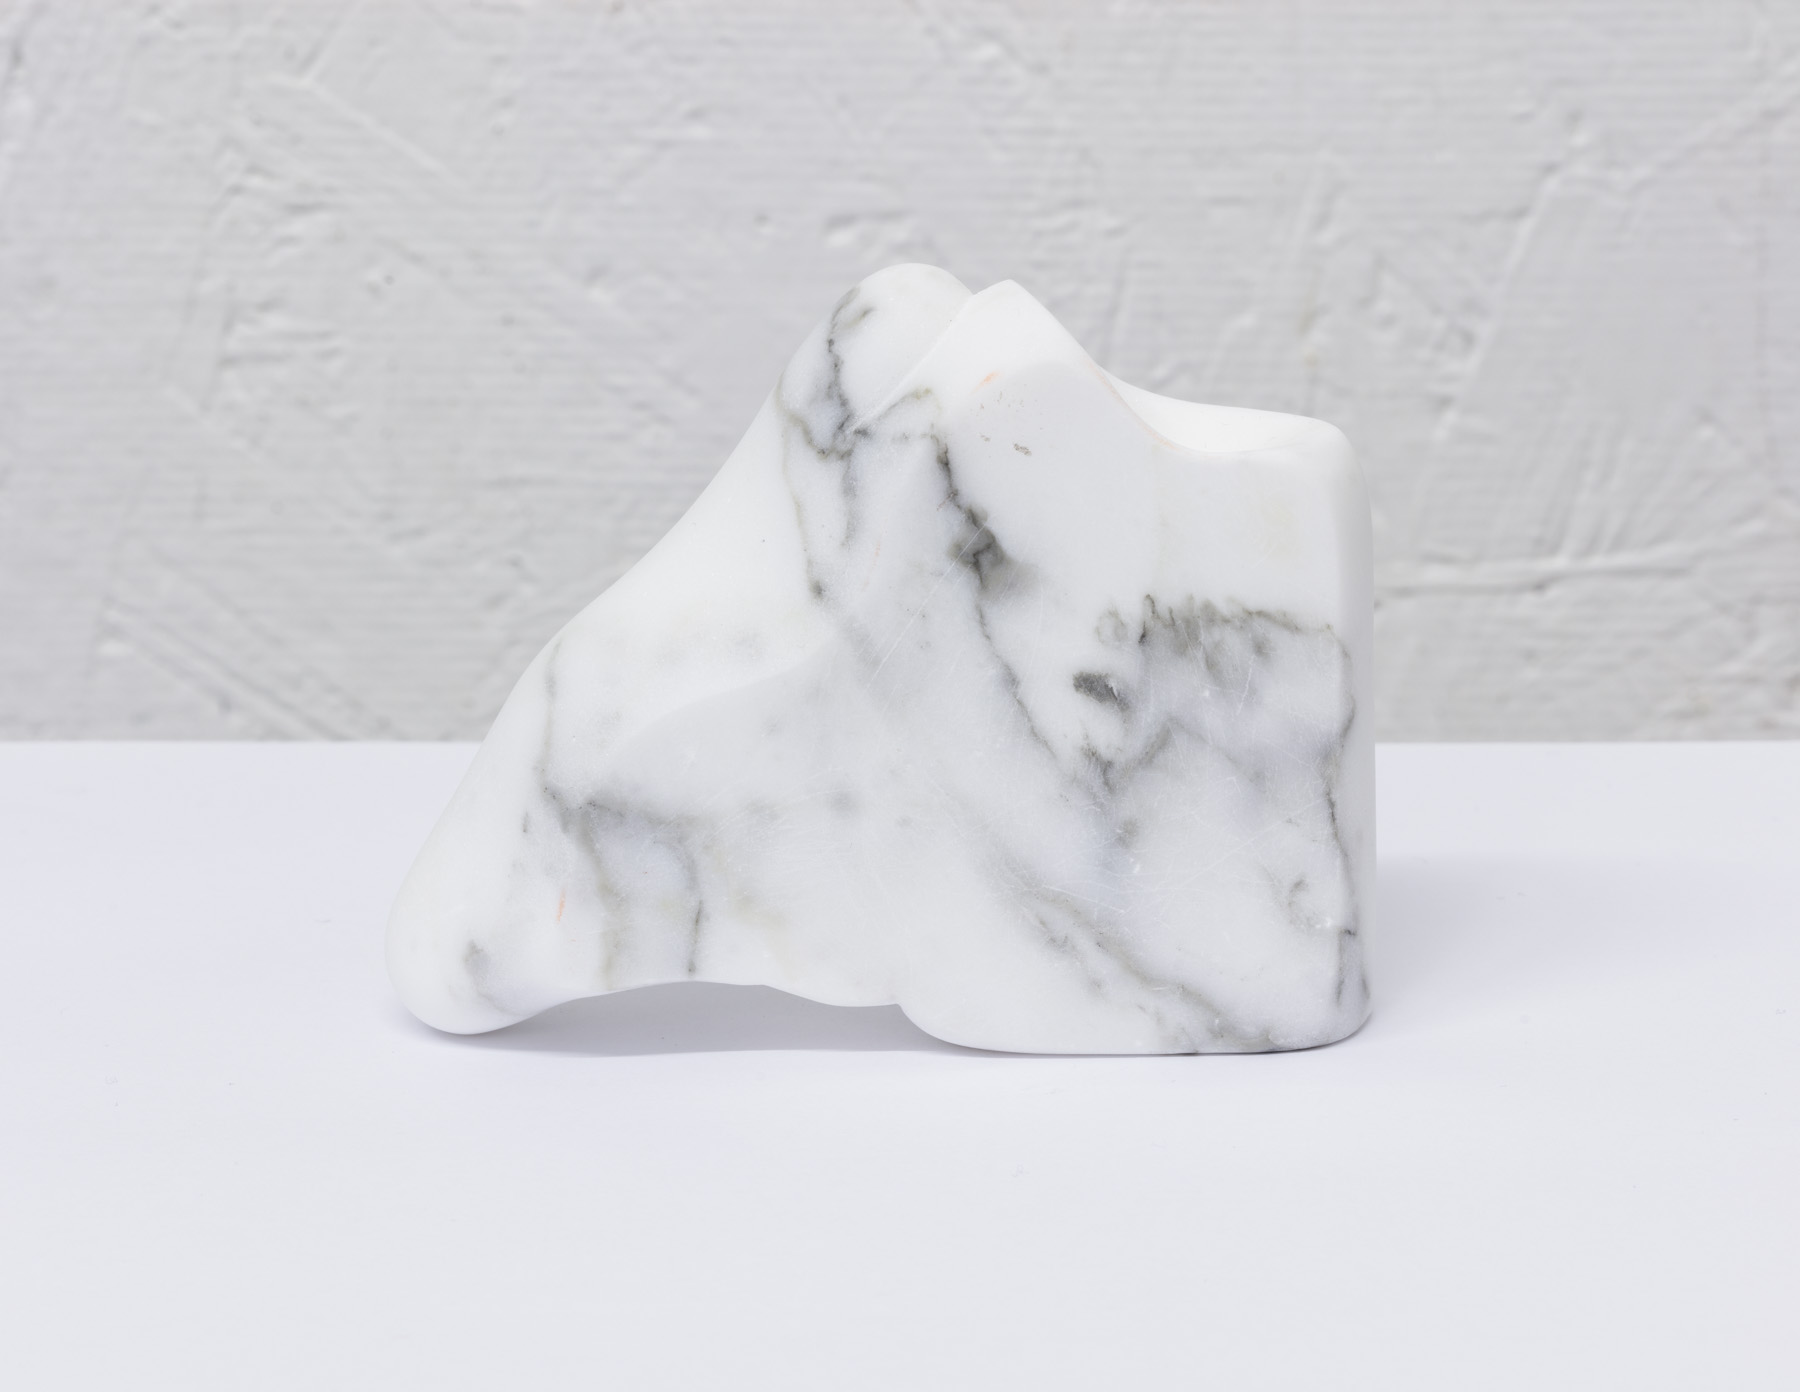 Foothold, 2019, marble, 4 ½ x  3 ½ x 1 inches